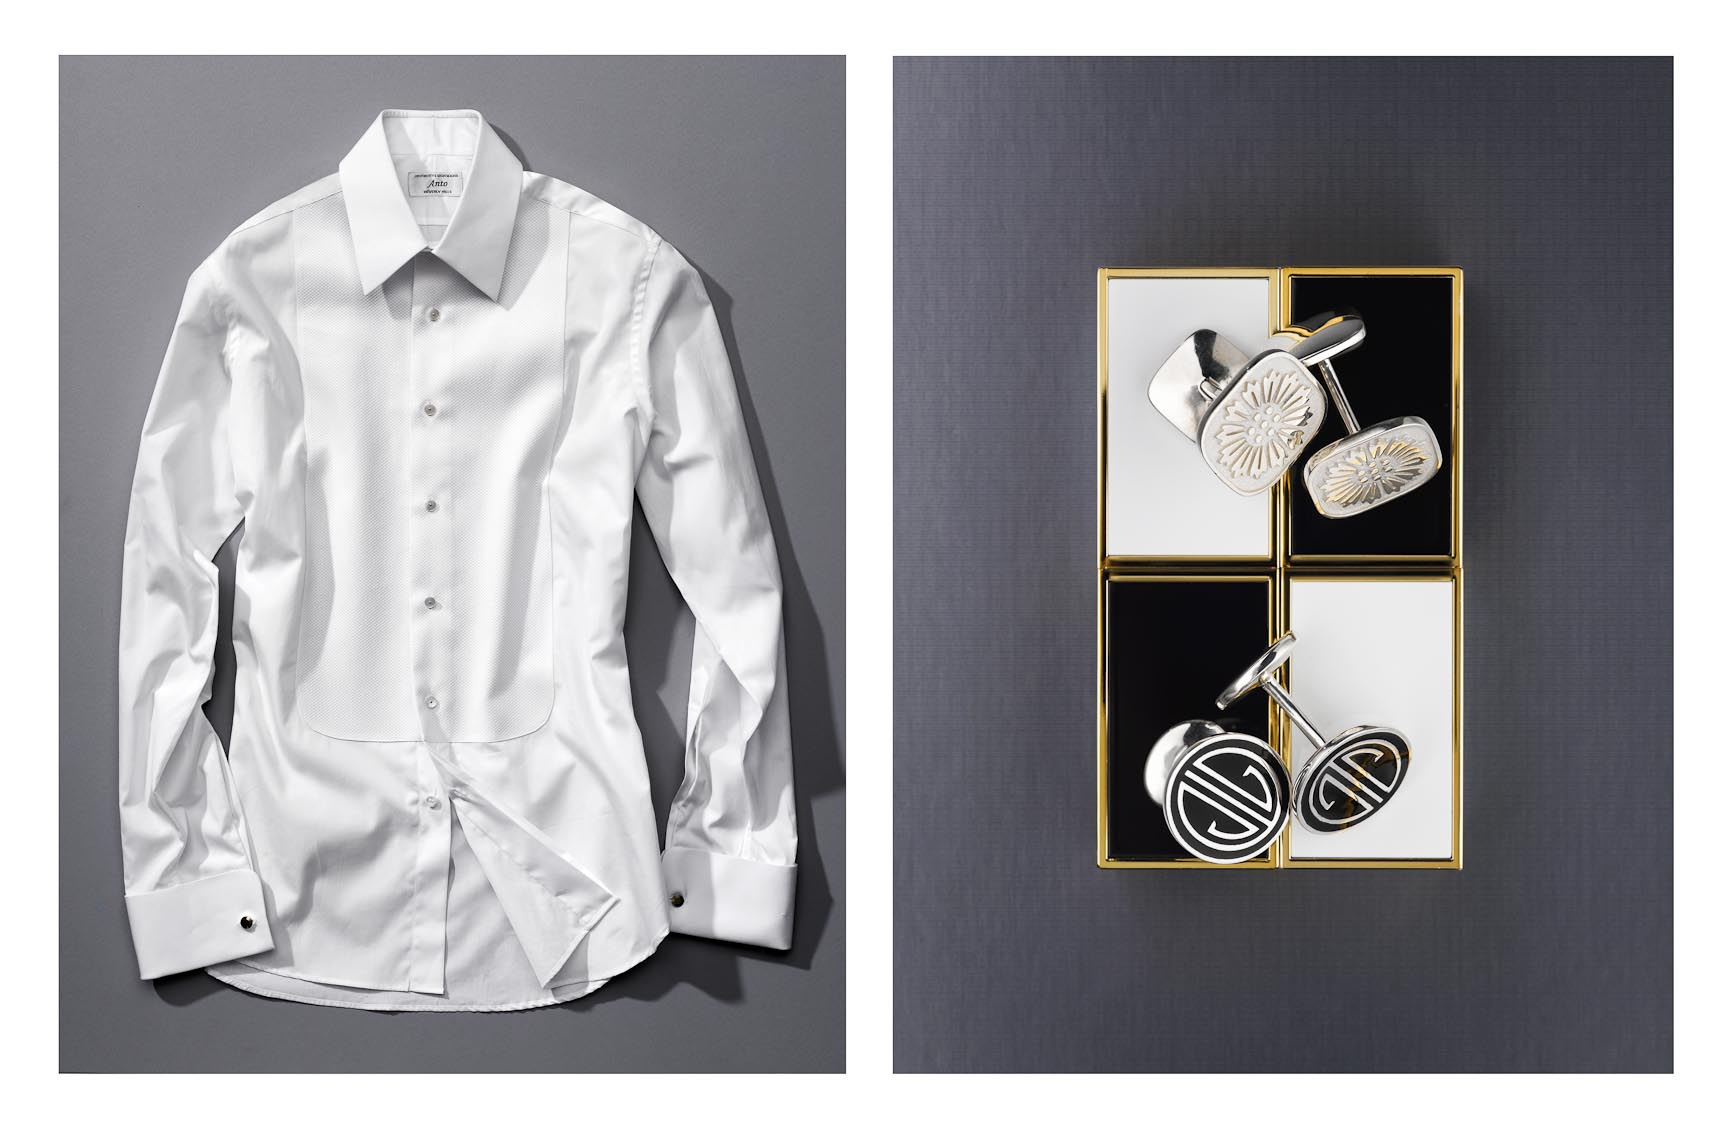 Apparel Still Life, Dress Shirt and Cufflinks Style Guide